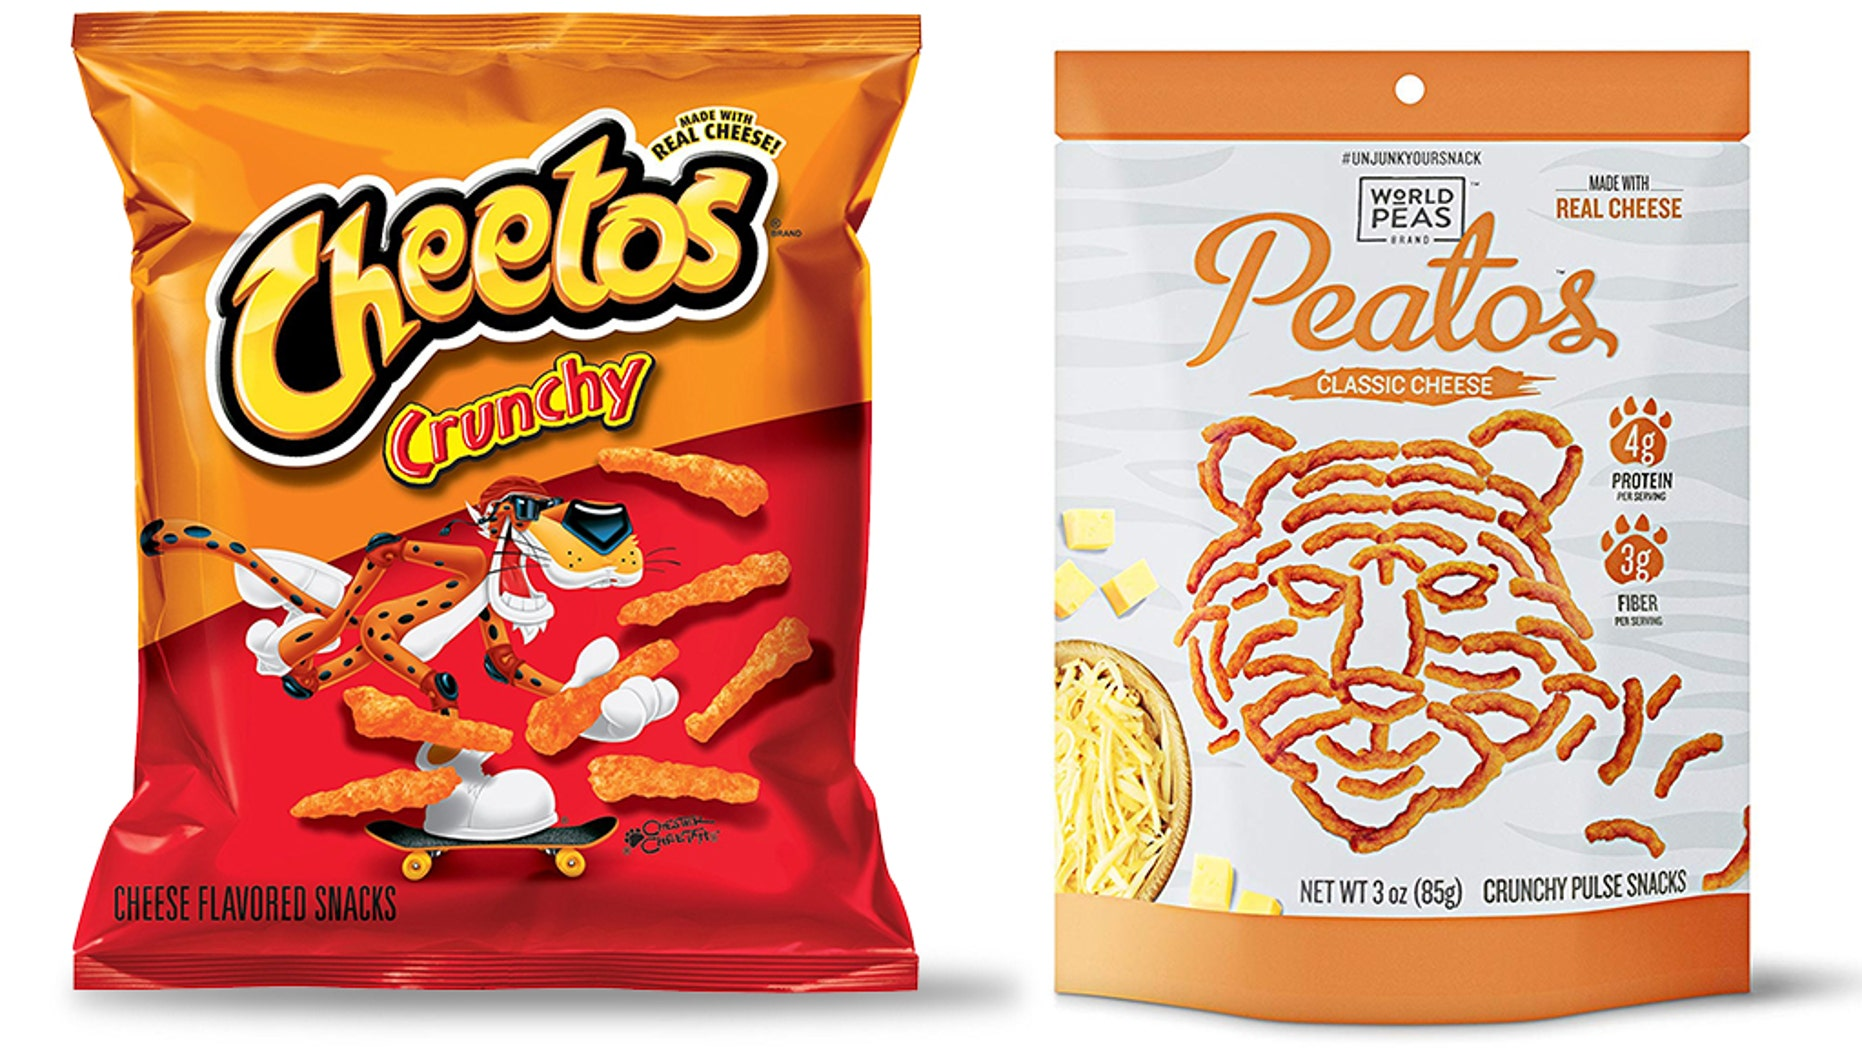 Cheetos has gone after Peatos for baring a very similar likeness to the iconic snack.